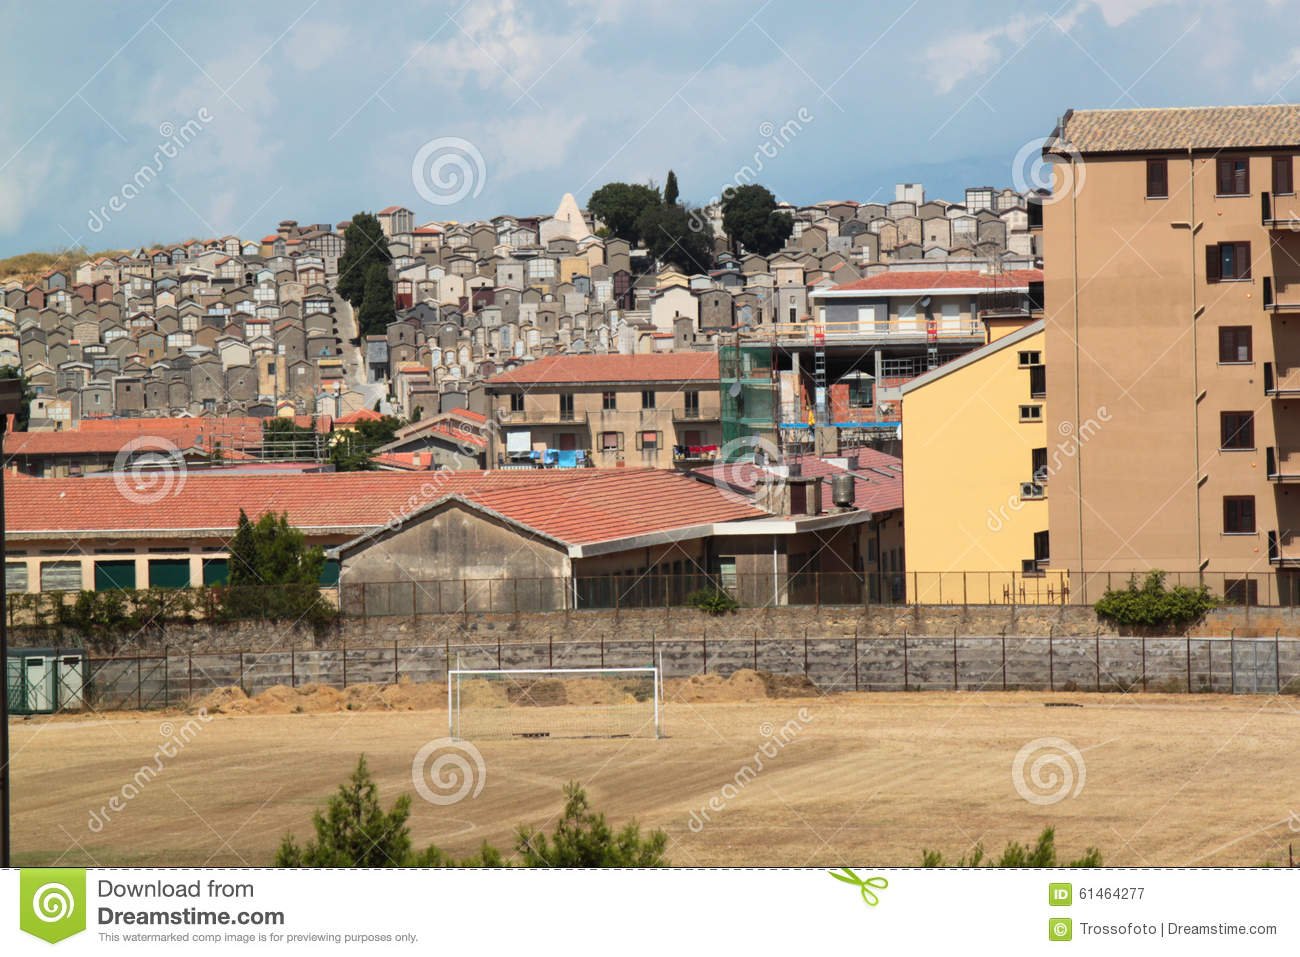 urban-landscape-view-city-enna-sicily-61464277